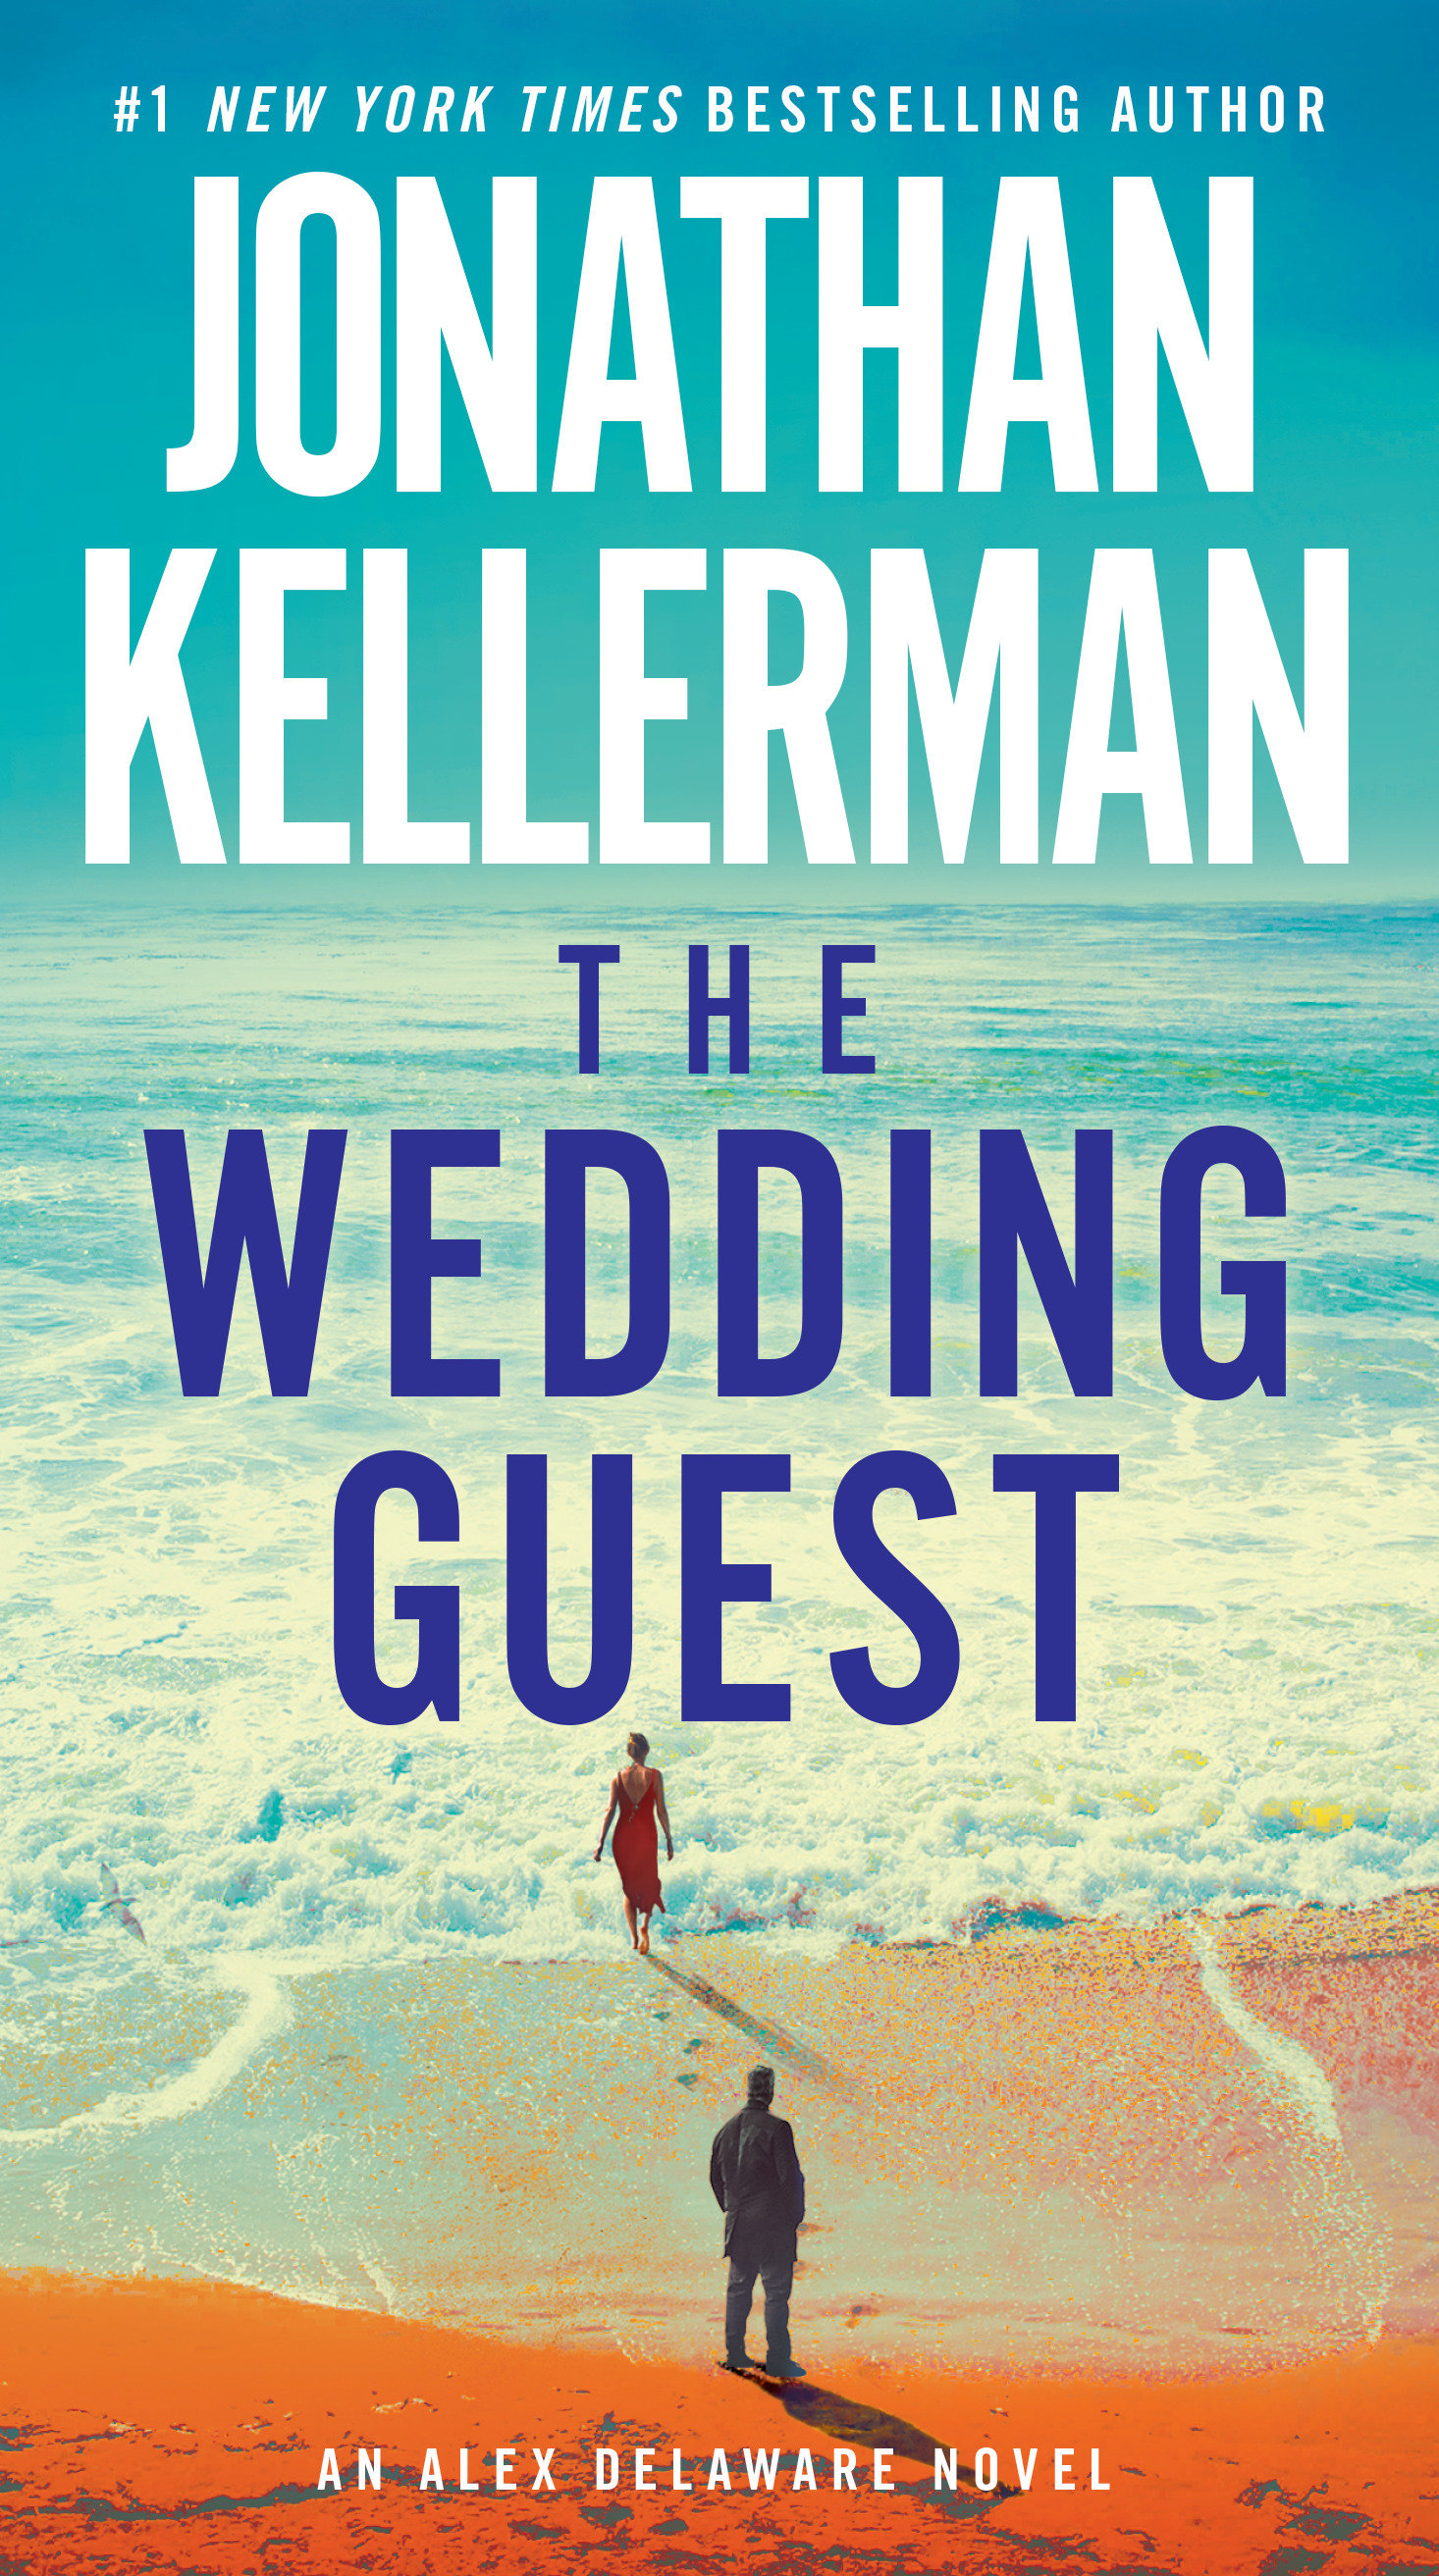 The wedding guest an Alex Delaware novel cover image